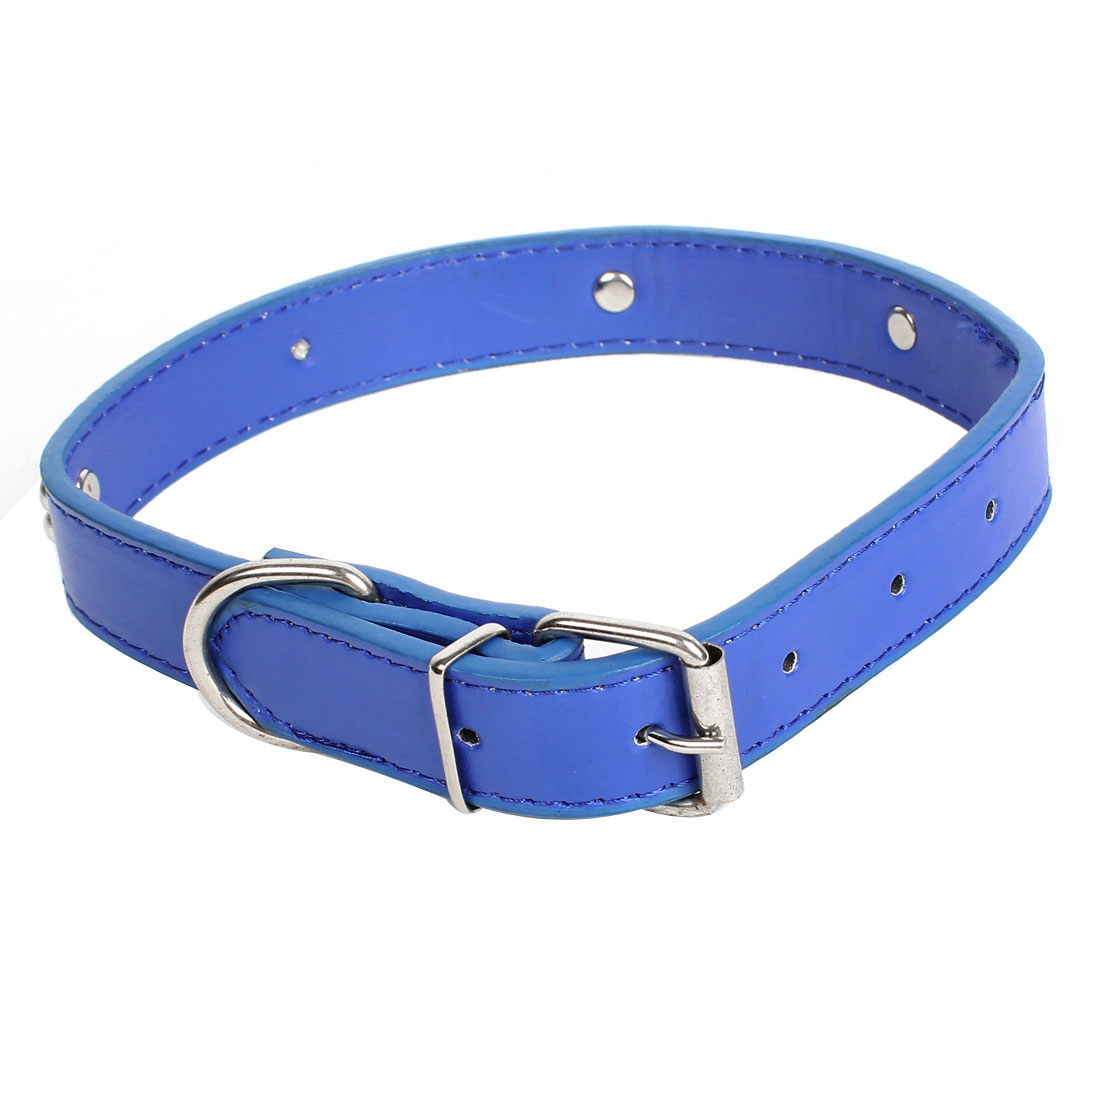 Single Prong Buckle Metal Bone Detail Faux Leather Adjustable Belt Collar Blue for Pet Cat Dog Doggy